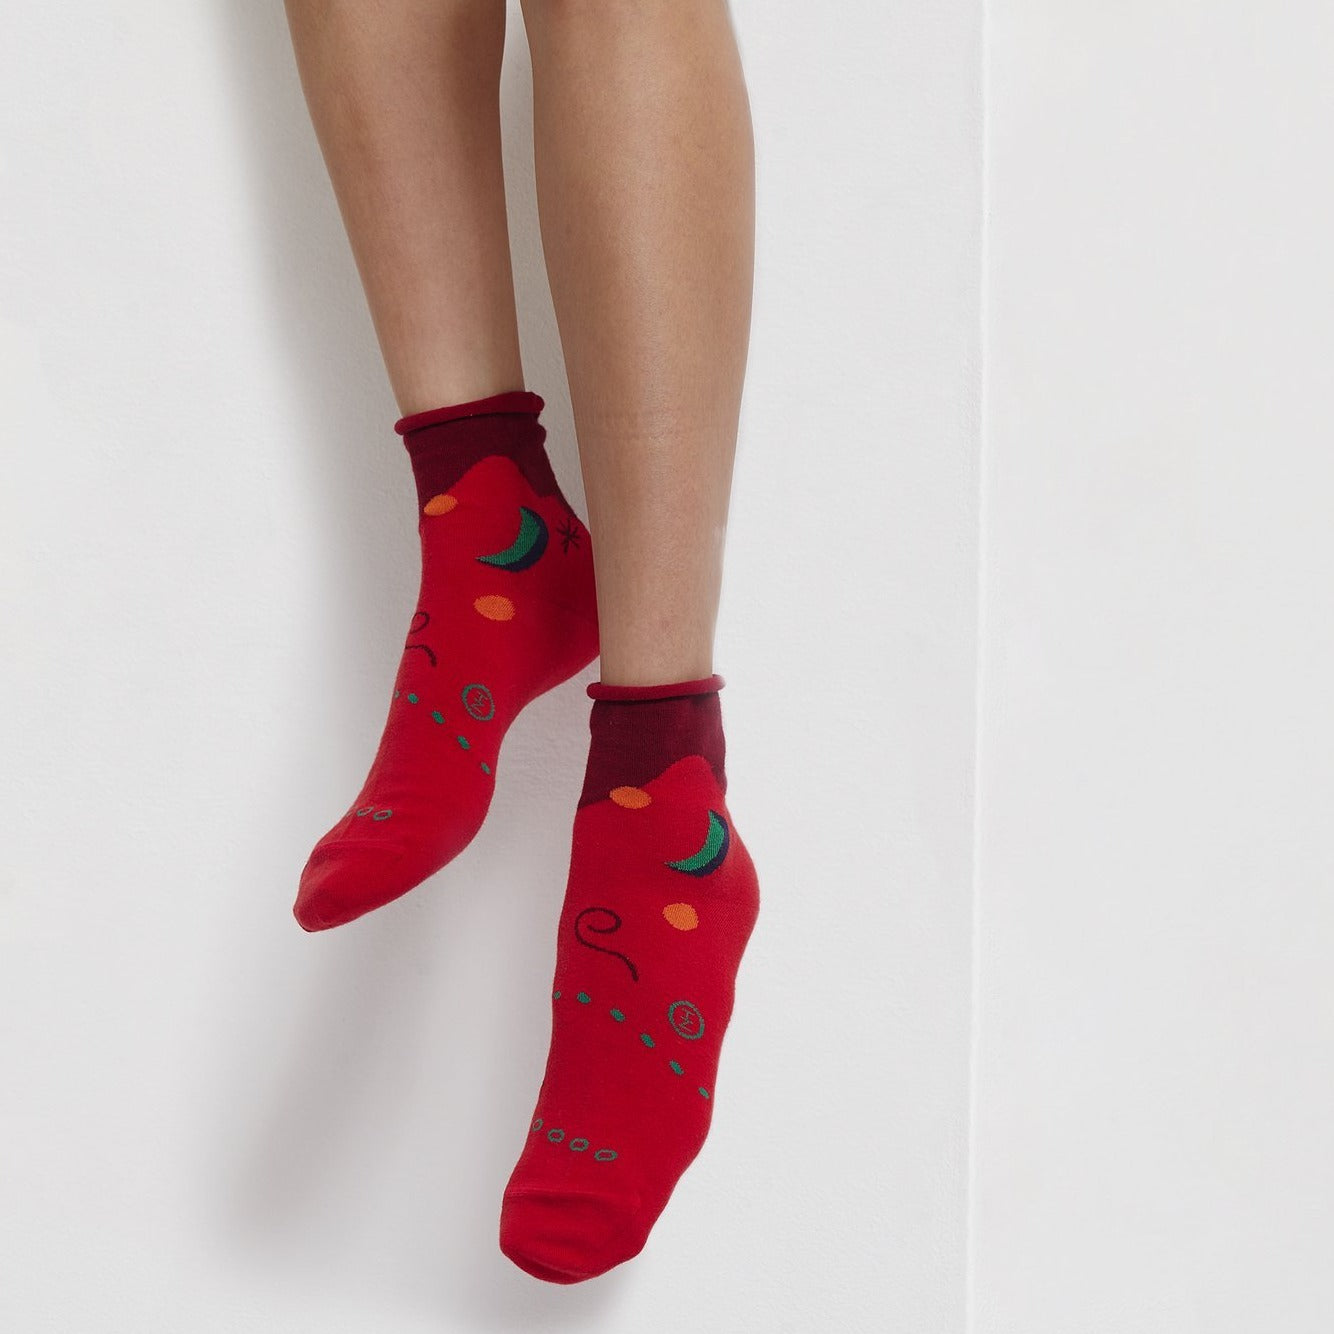 GOODPAIR SOCKS: PEEK-A-BOO MoonSun / Red